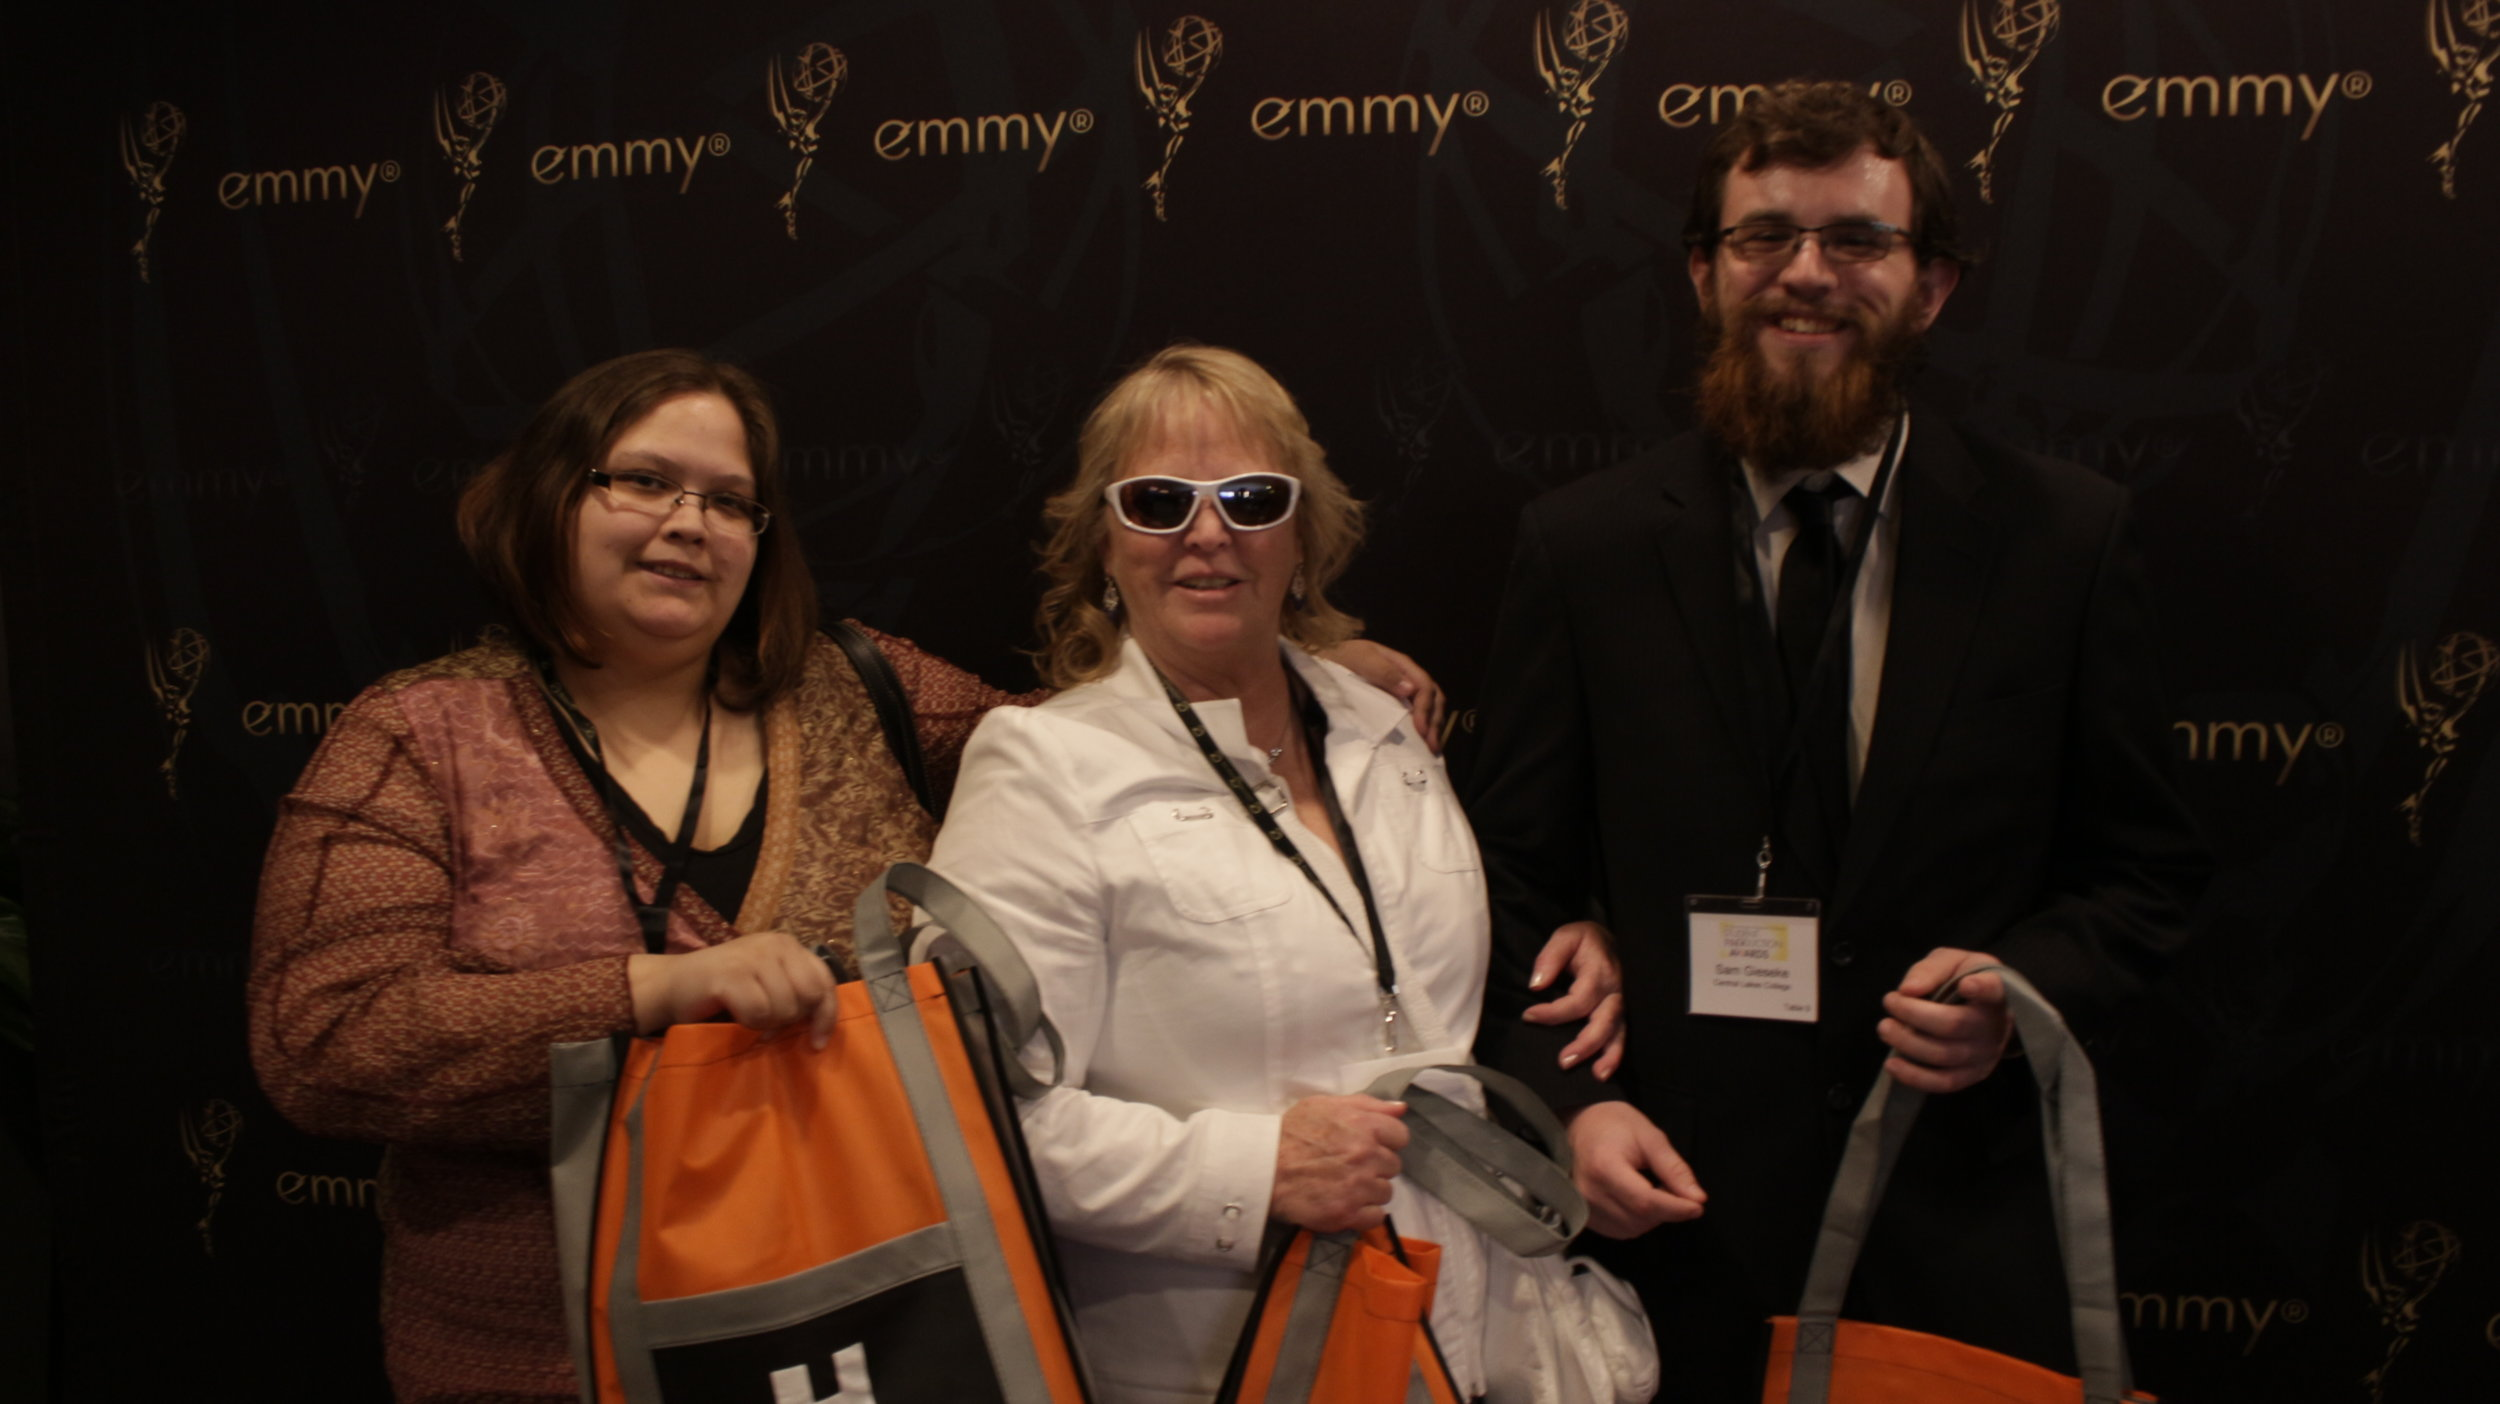 t The Emmys National Student Production Awards. we nominated for the Video Above this photo. It was a Blast.